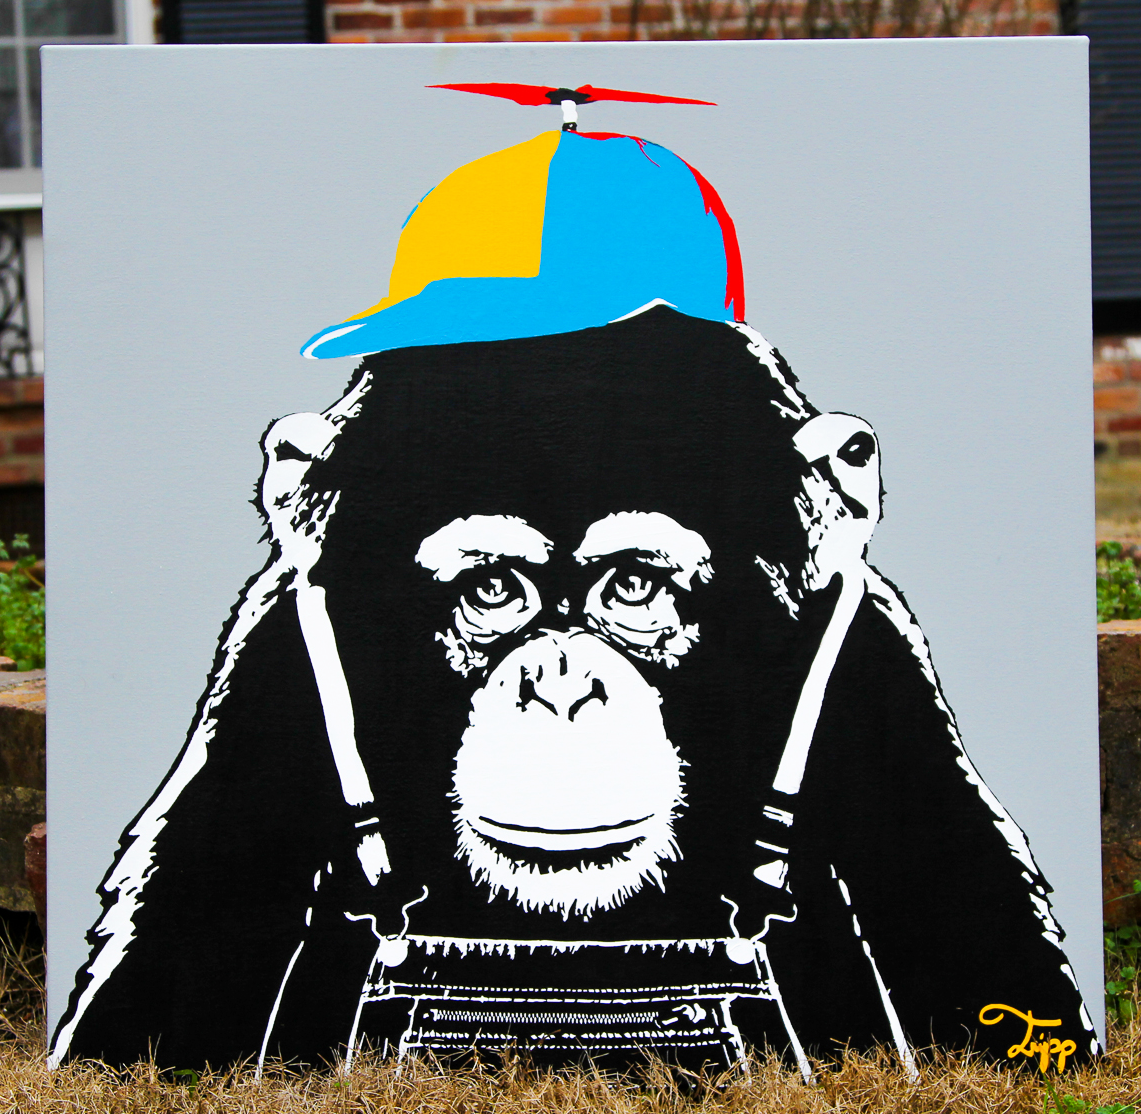 """$550  """"Monkey See Monkey Do"""" Acrylic 30X30 Gallery Wrapped Canvas   Purchase Here"""